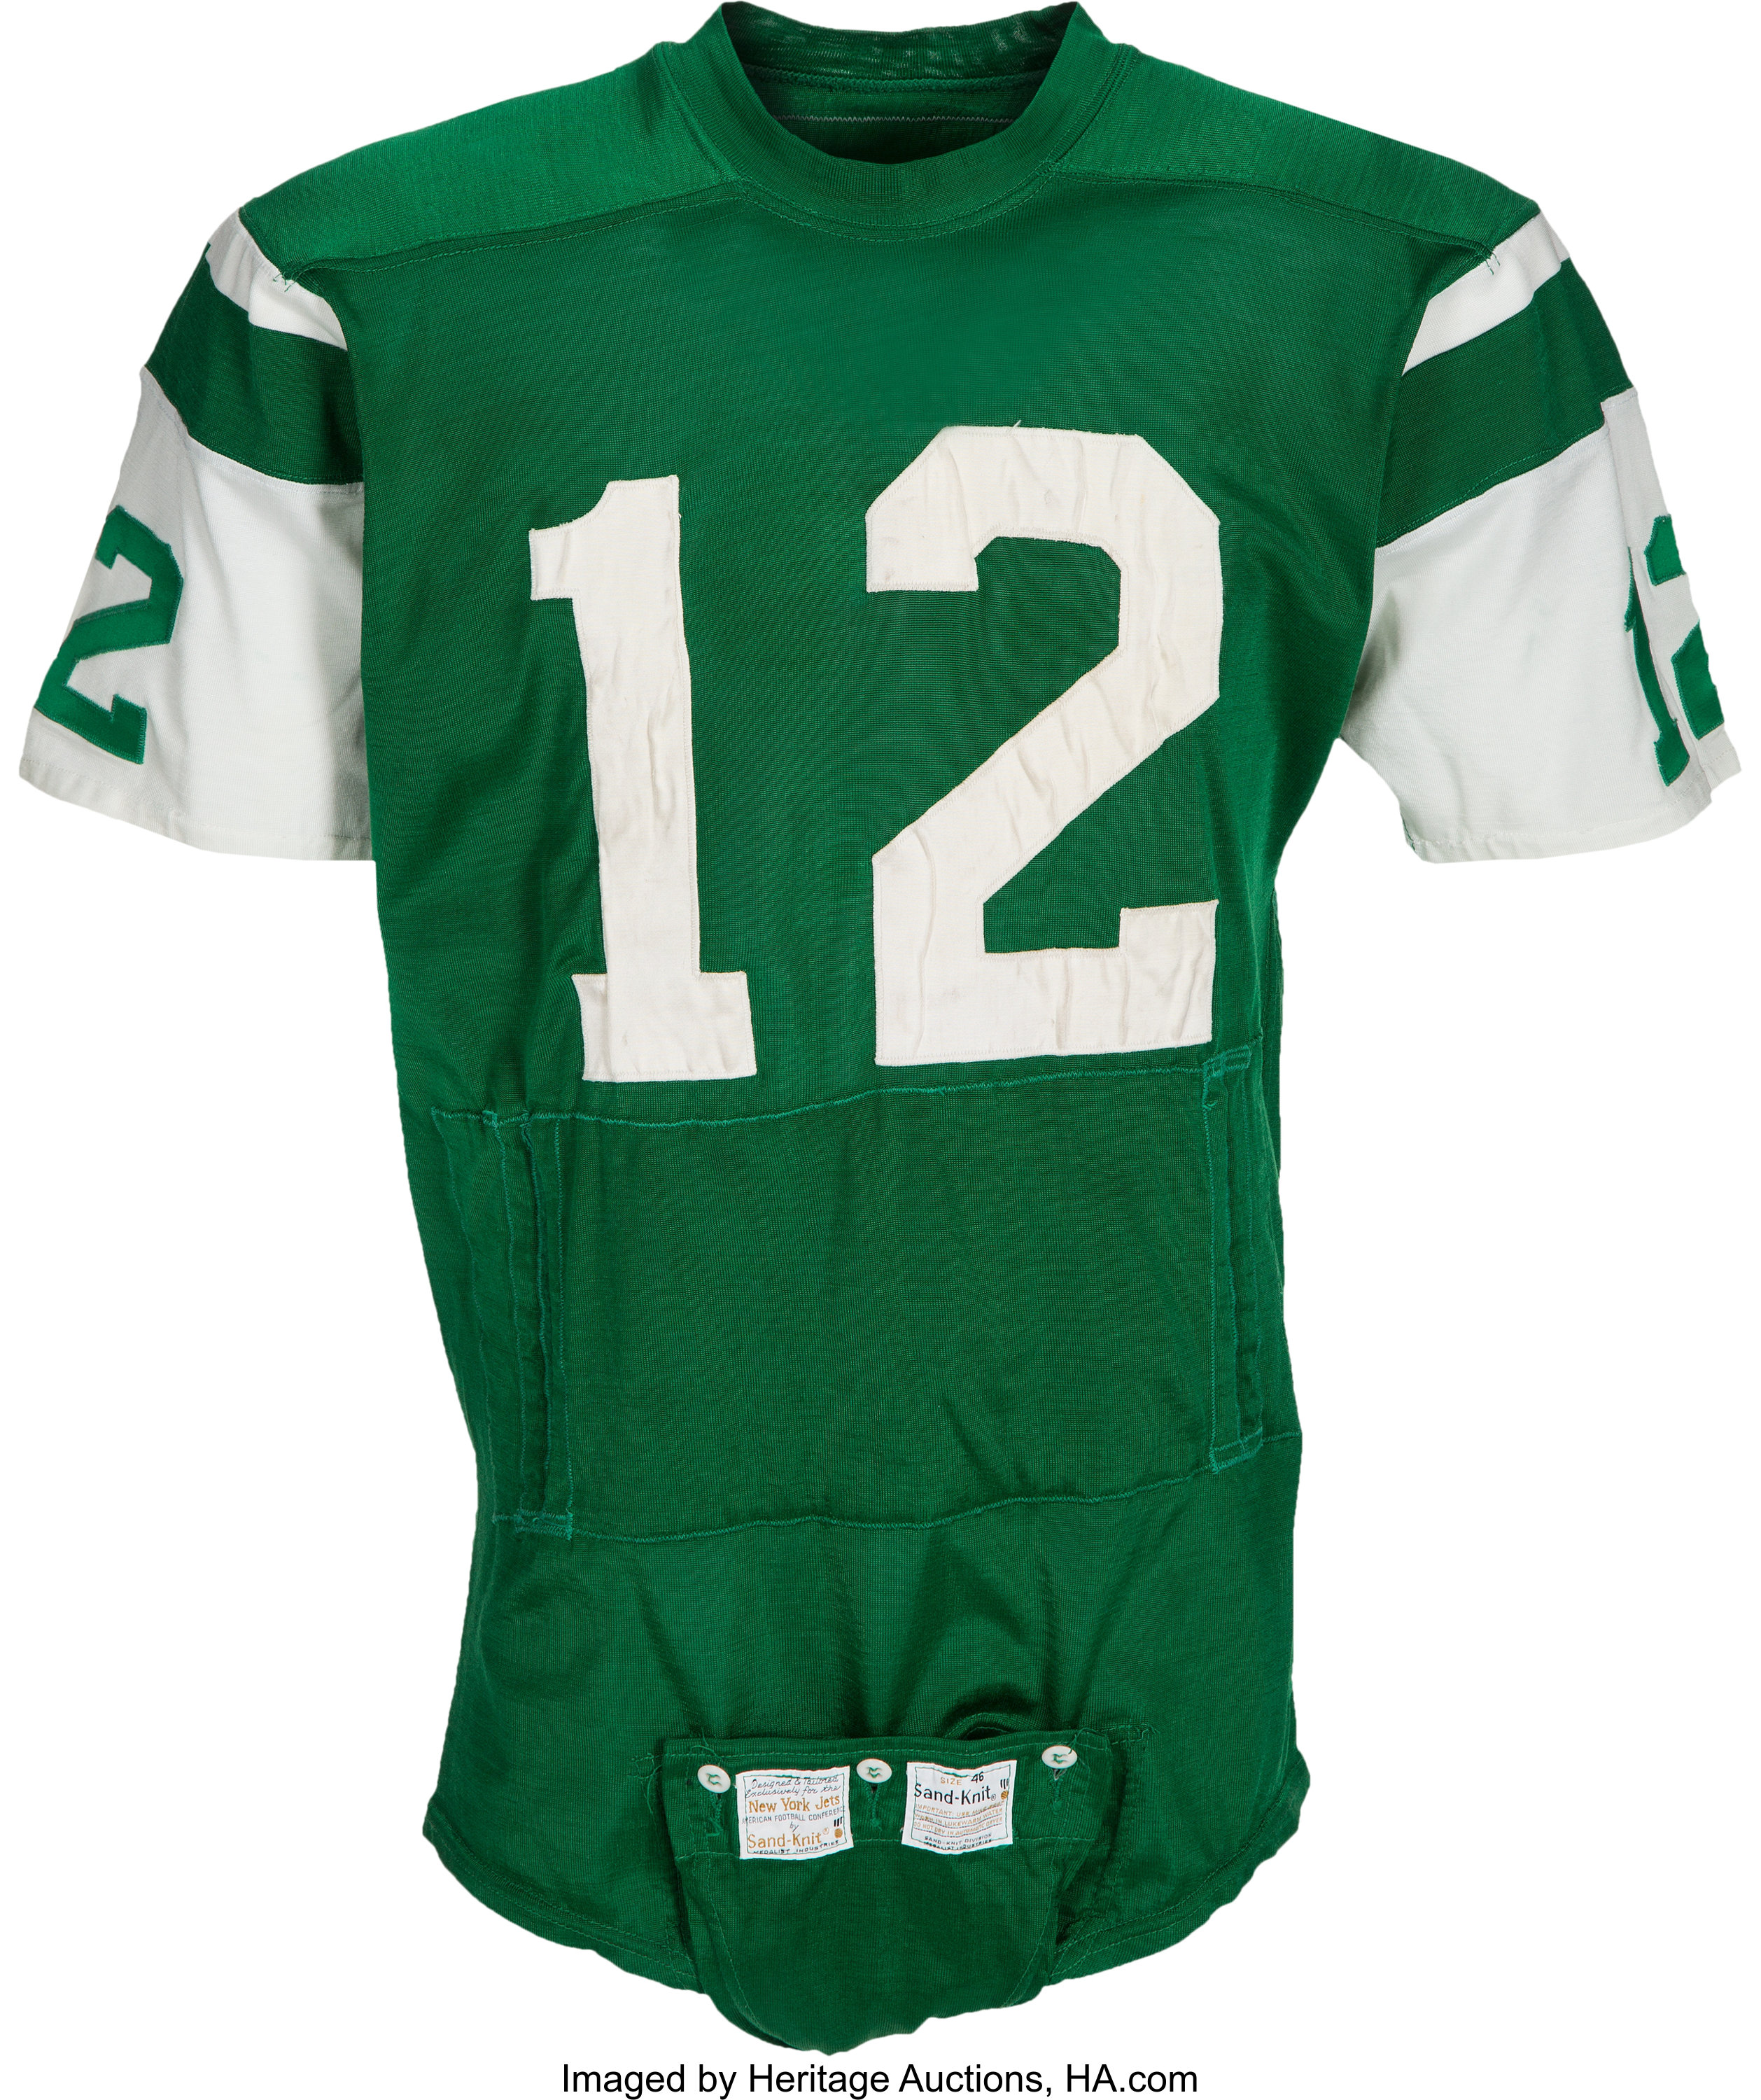 1970 73 Joe Namath Game Worn New York Jets Jersey, MEARS A10  free shipping